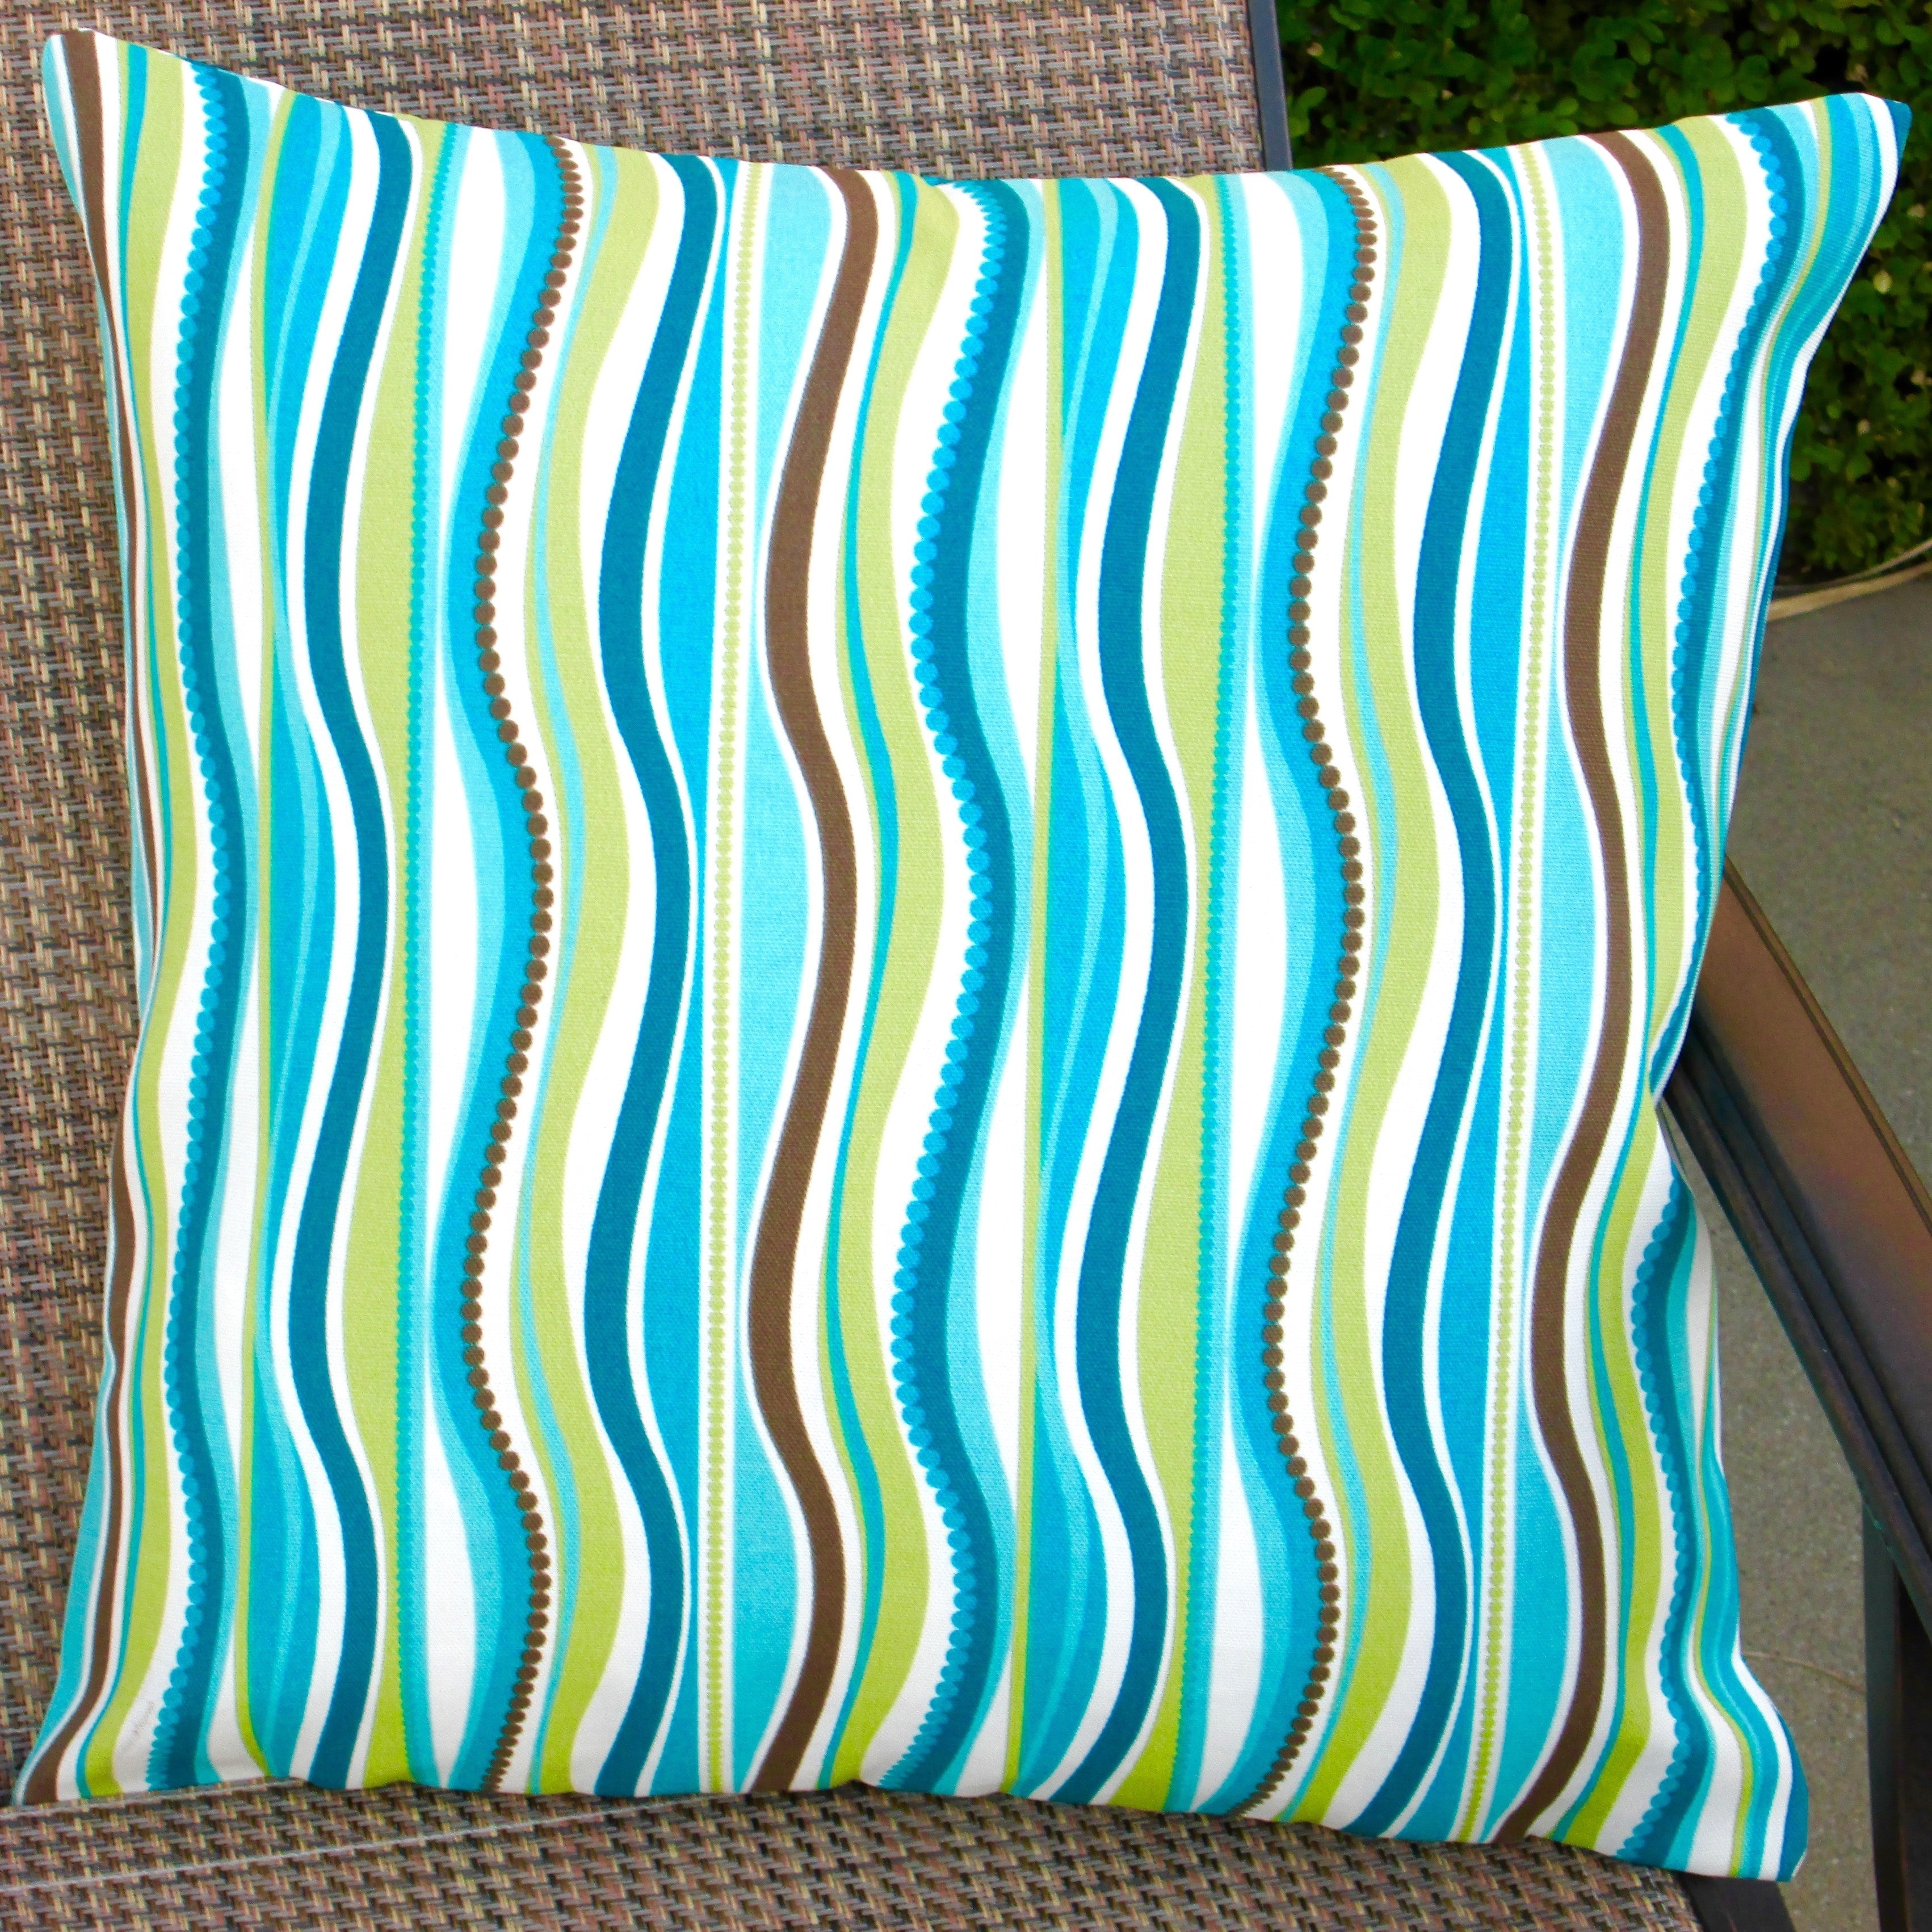 to pin pillows pieces banana patio perfection help achieve you decor pillowsgreen green pillowscoral pillow